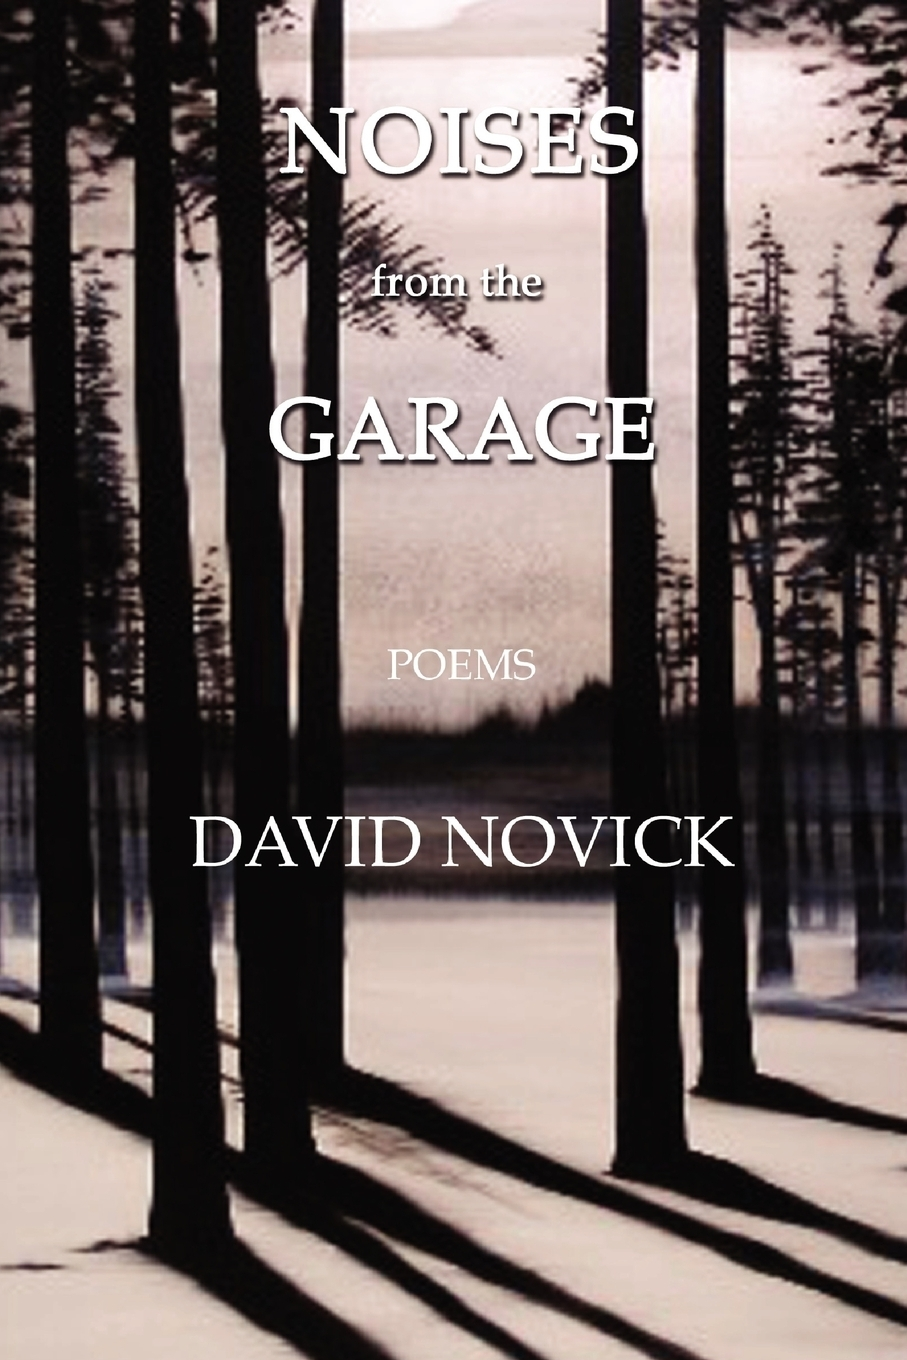 David Novick. Noises from the Garage